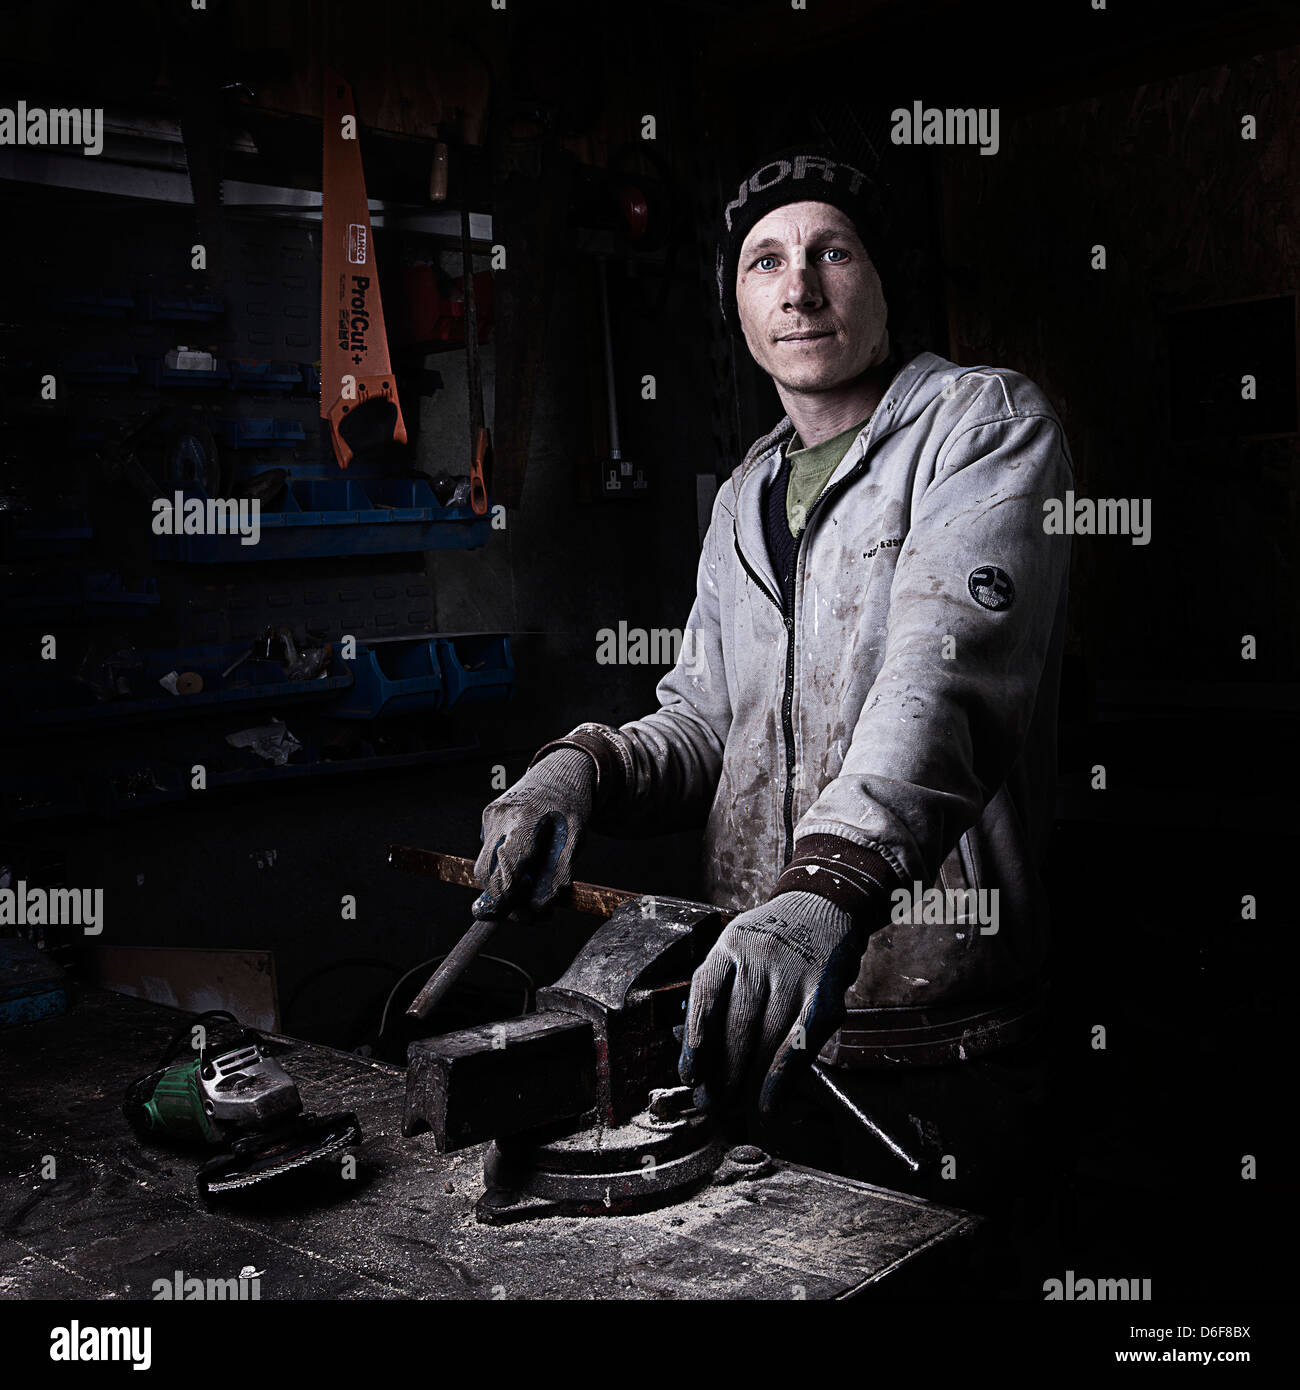 The locksmith - Stock Image